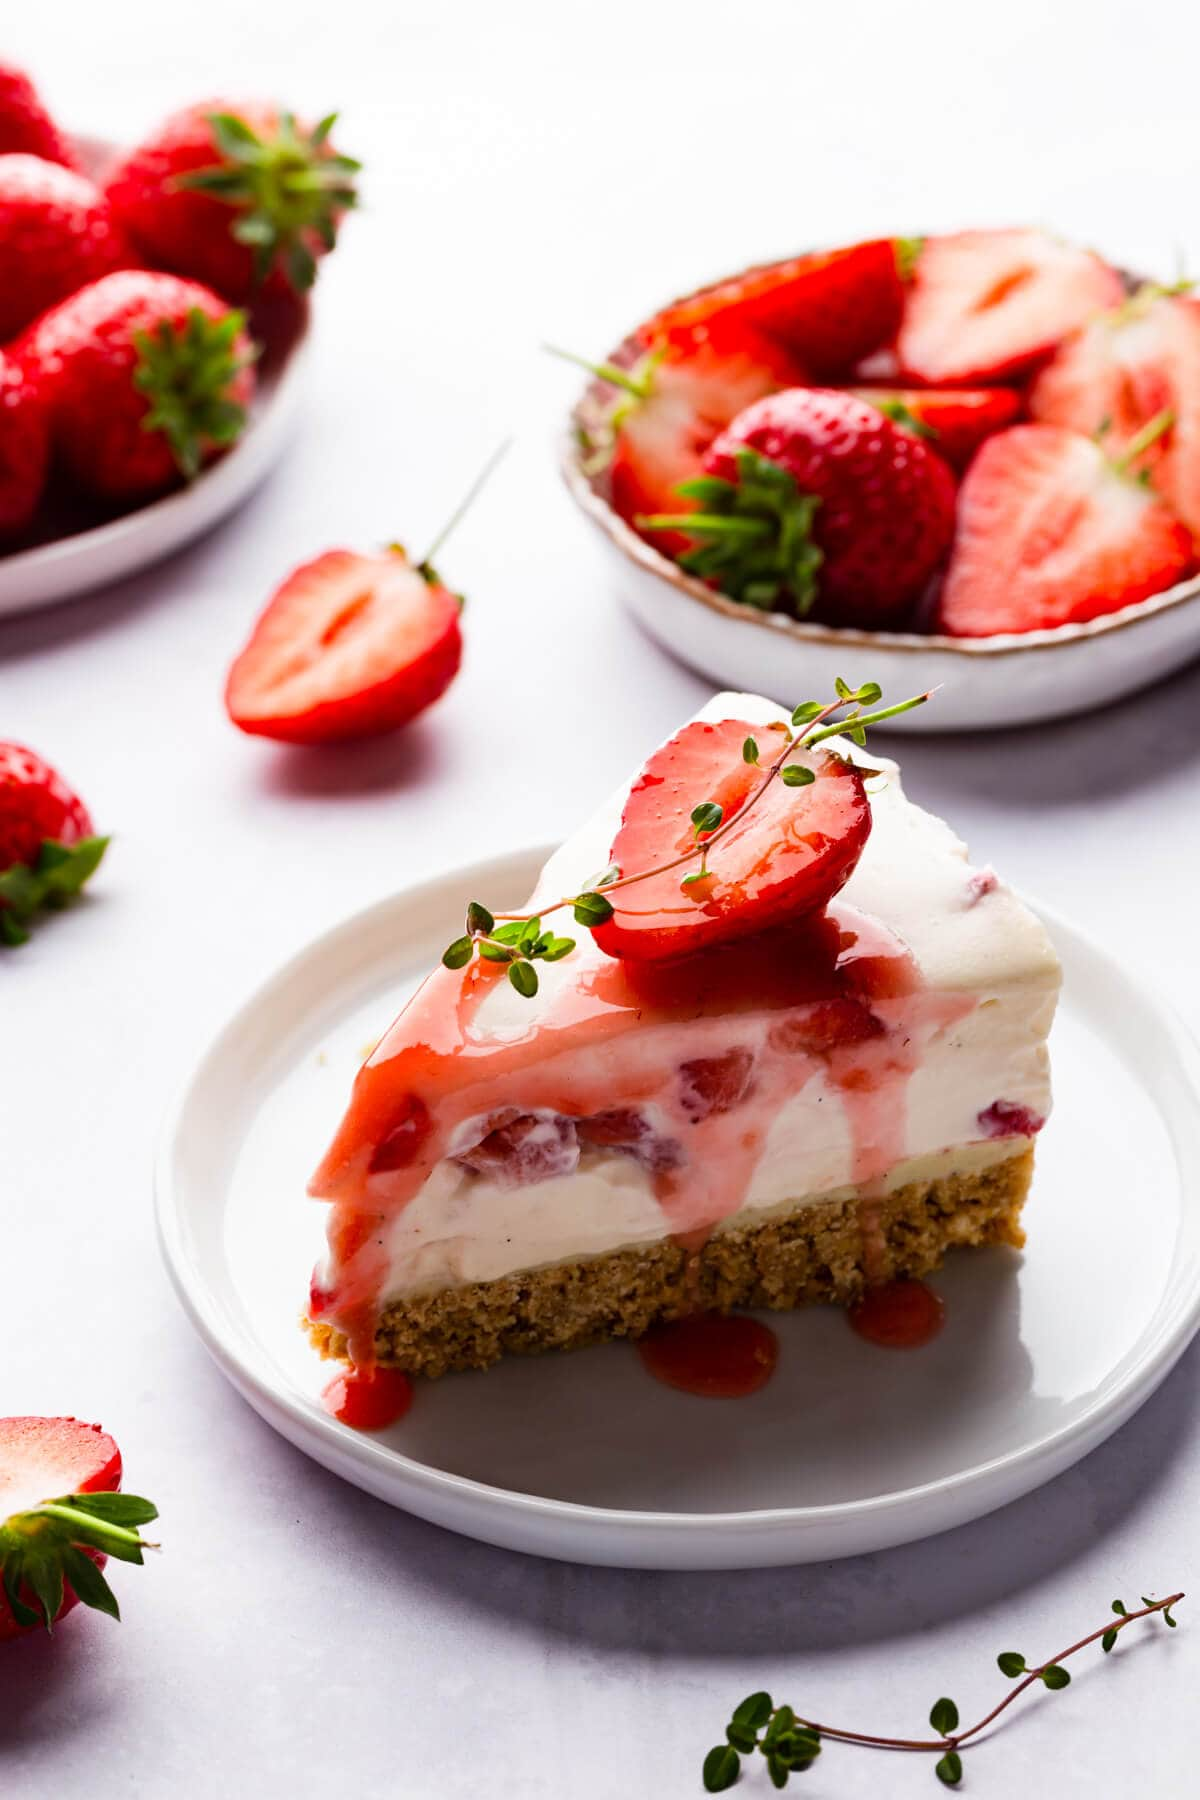 45 degree view of a single slice of strawberry white chocolate cheesecake on a small plate